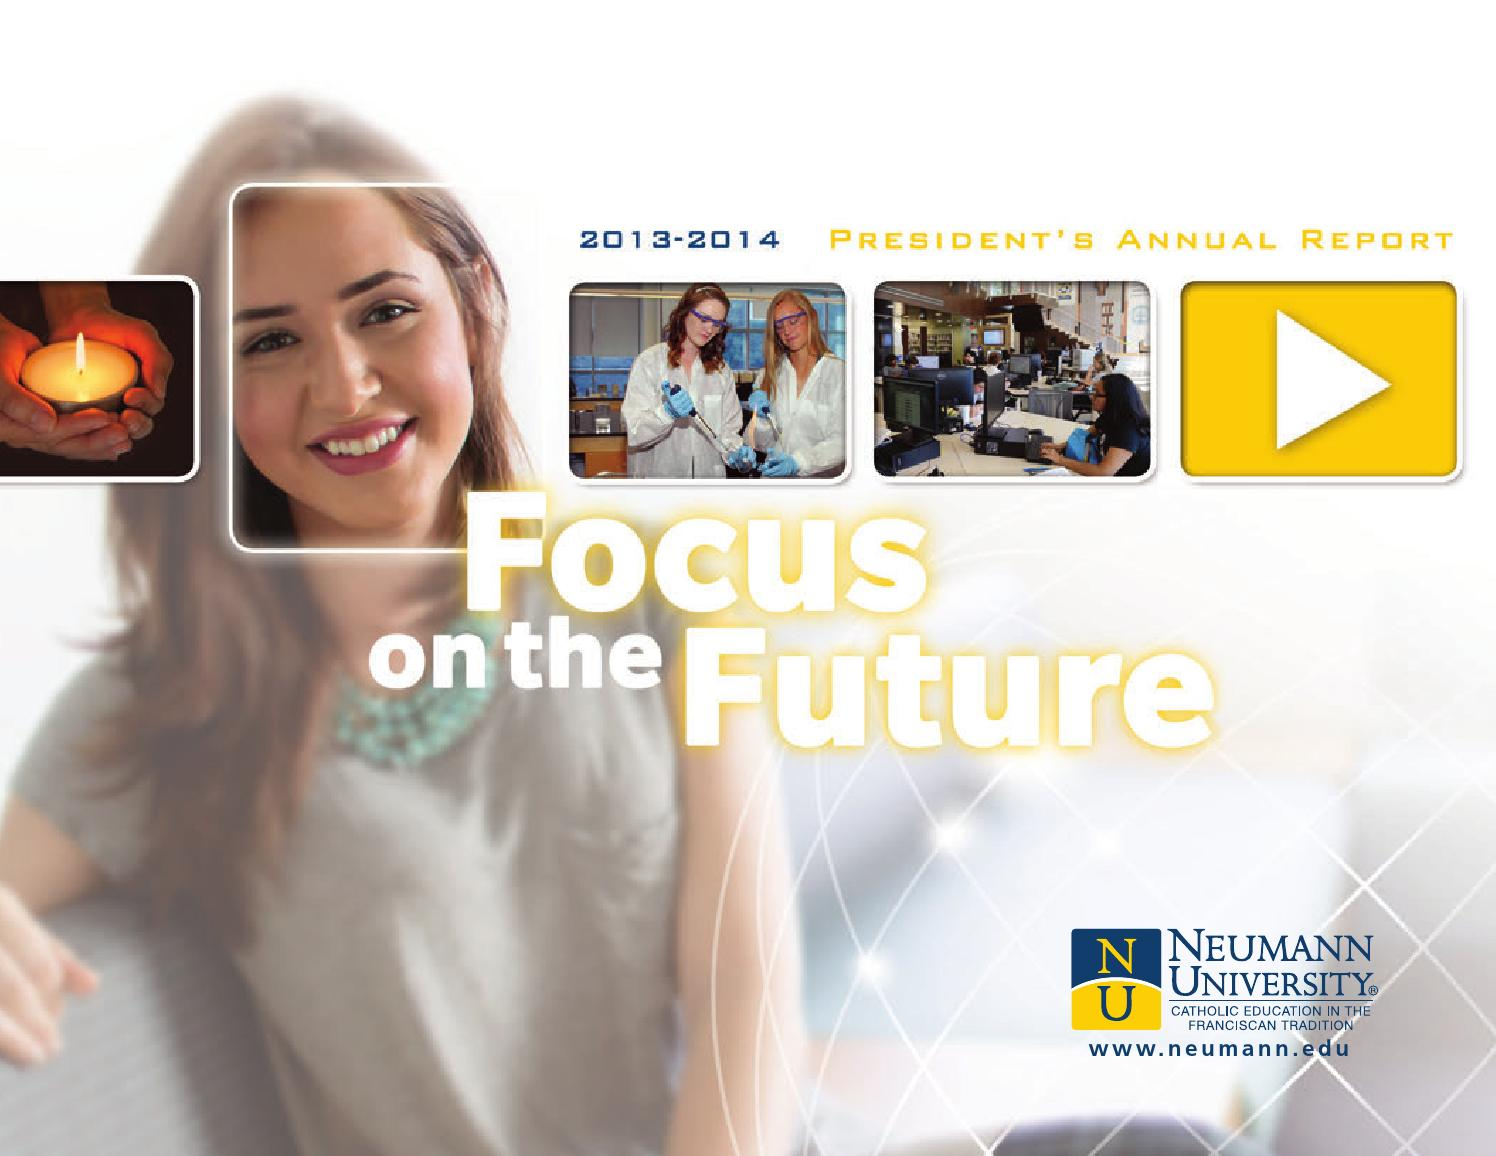 annual report 2015 2016 by neumann university issuu neumann university president s annual report 2013 2014